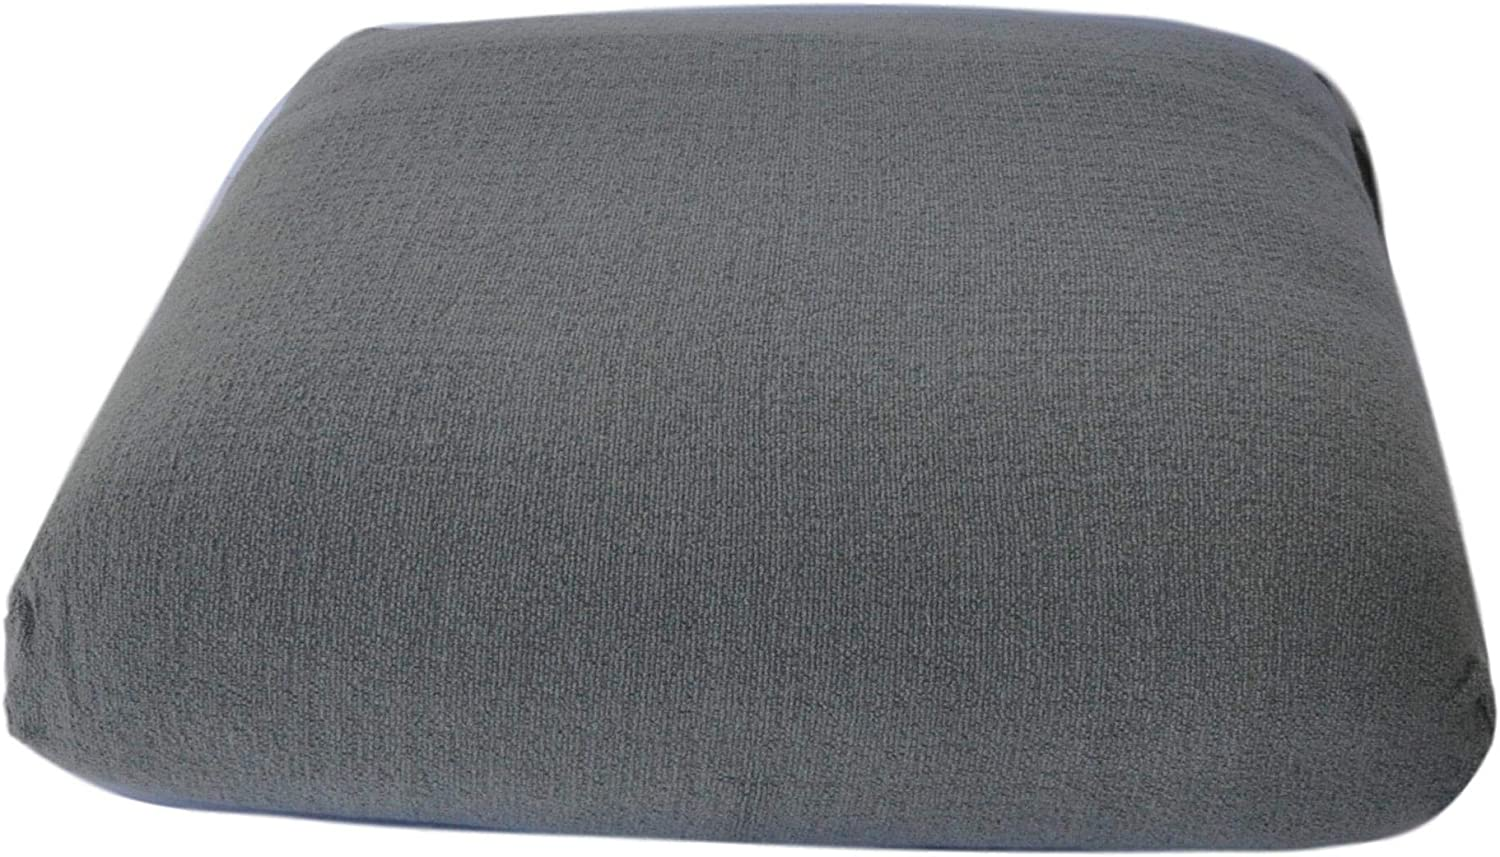 CushyChic Outdoors Terry Slipcover for Ottoman Cushion in Cool Medium Grey – Slipcover Only – Cushion Insert NOT Included